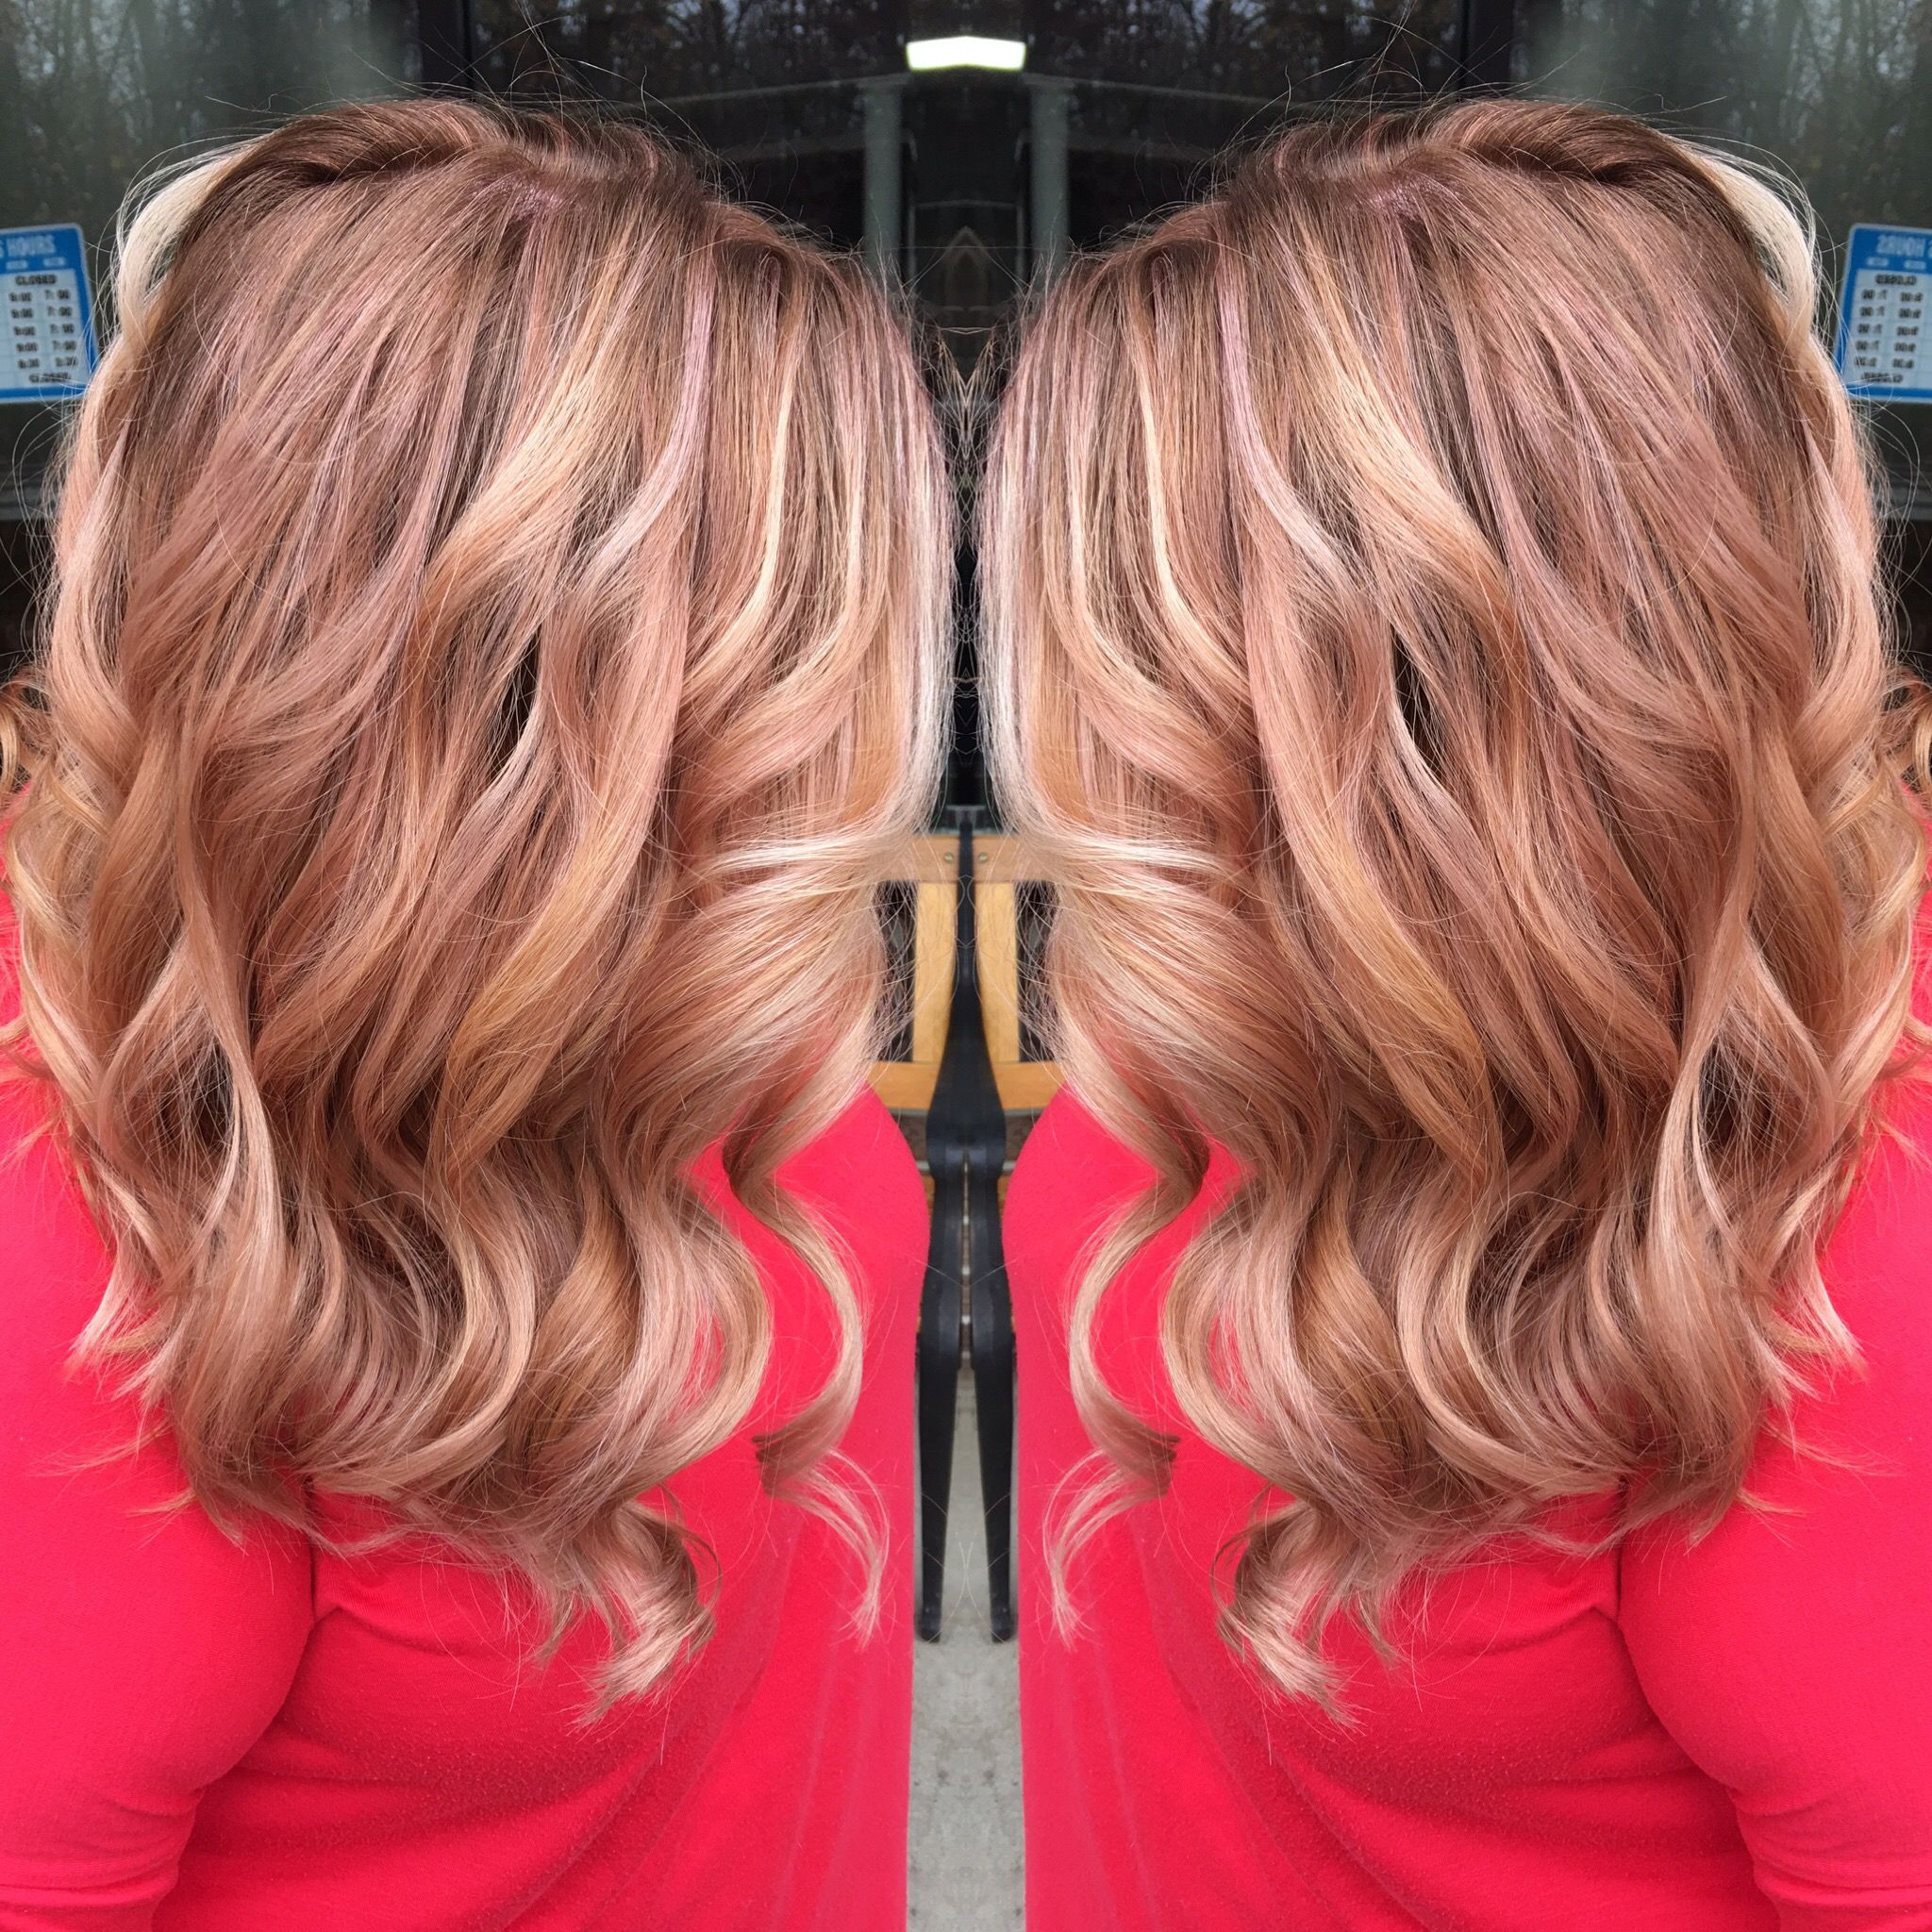 Amshnm Rose Gold Copper Blonde Hair Pink Champagne Beauty Of